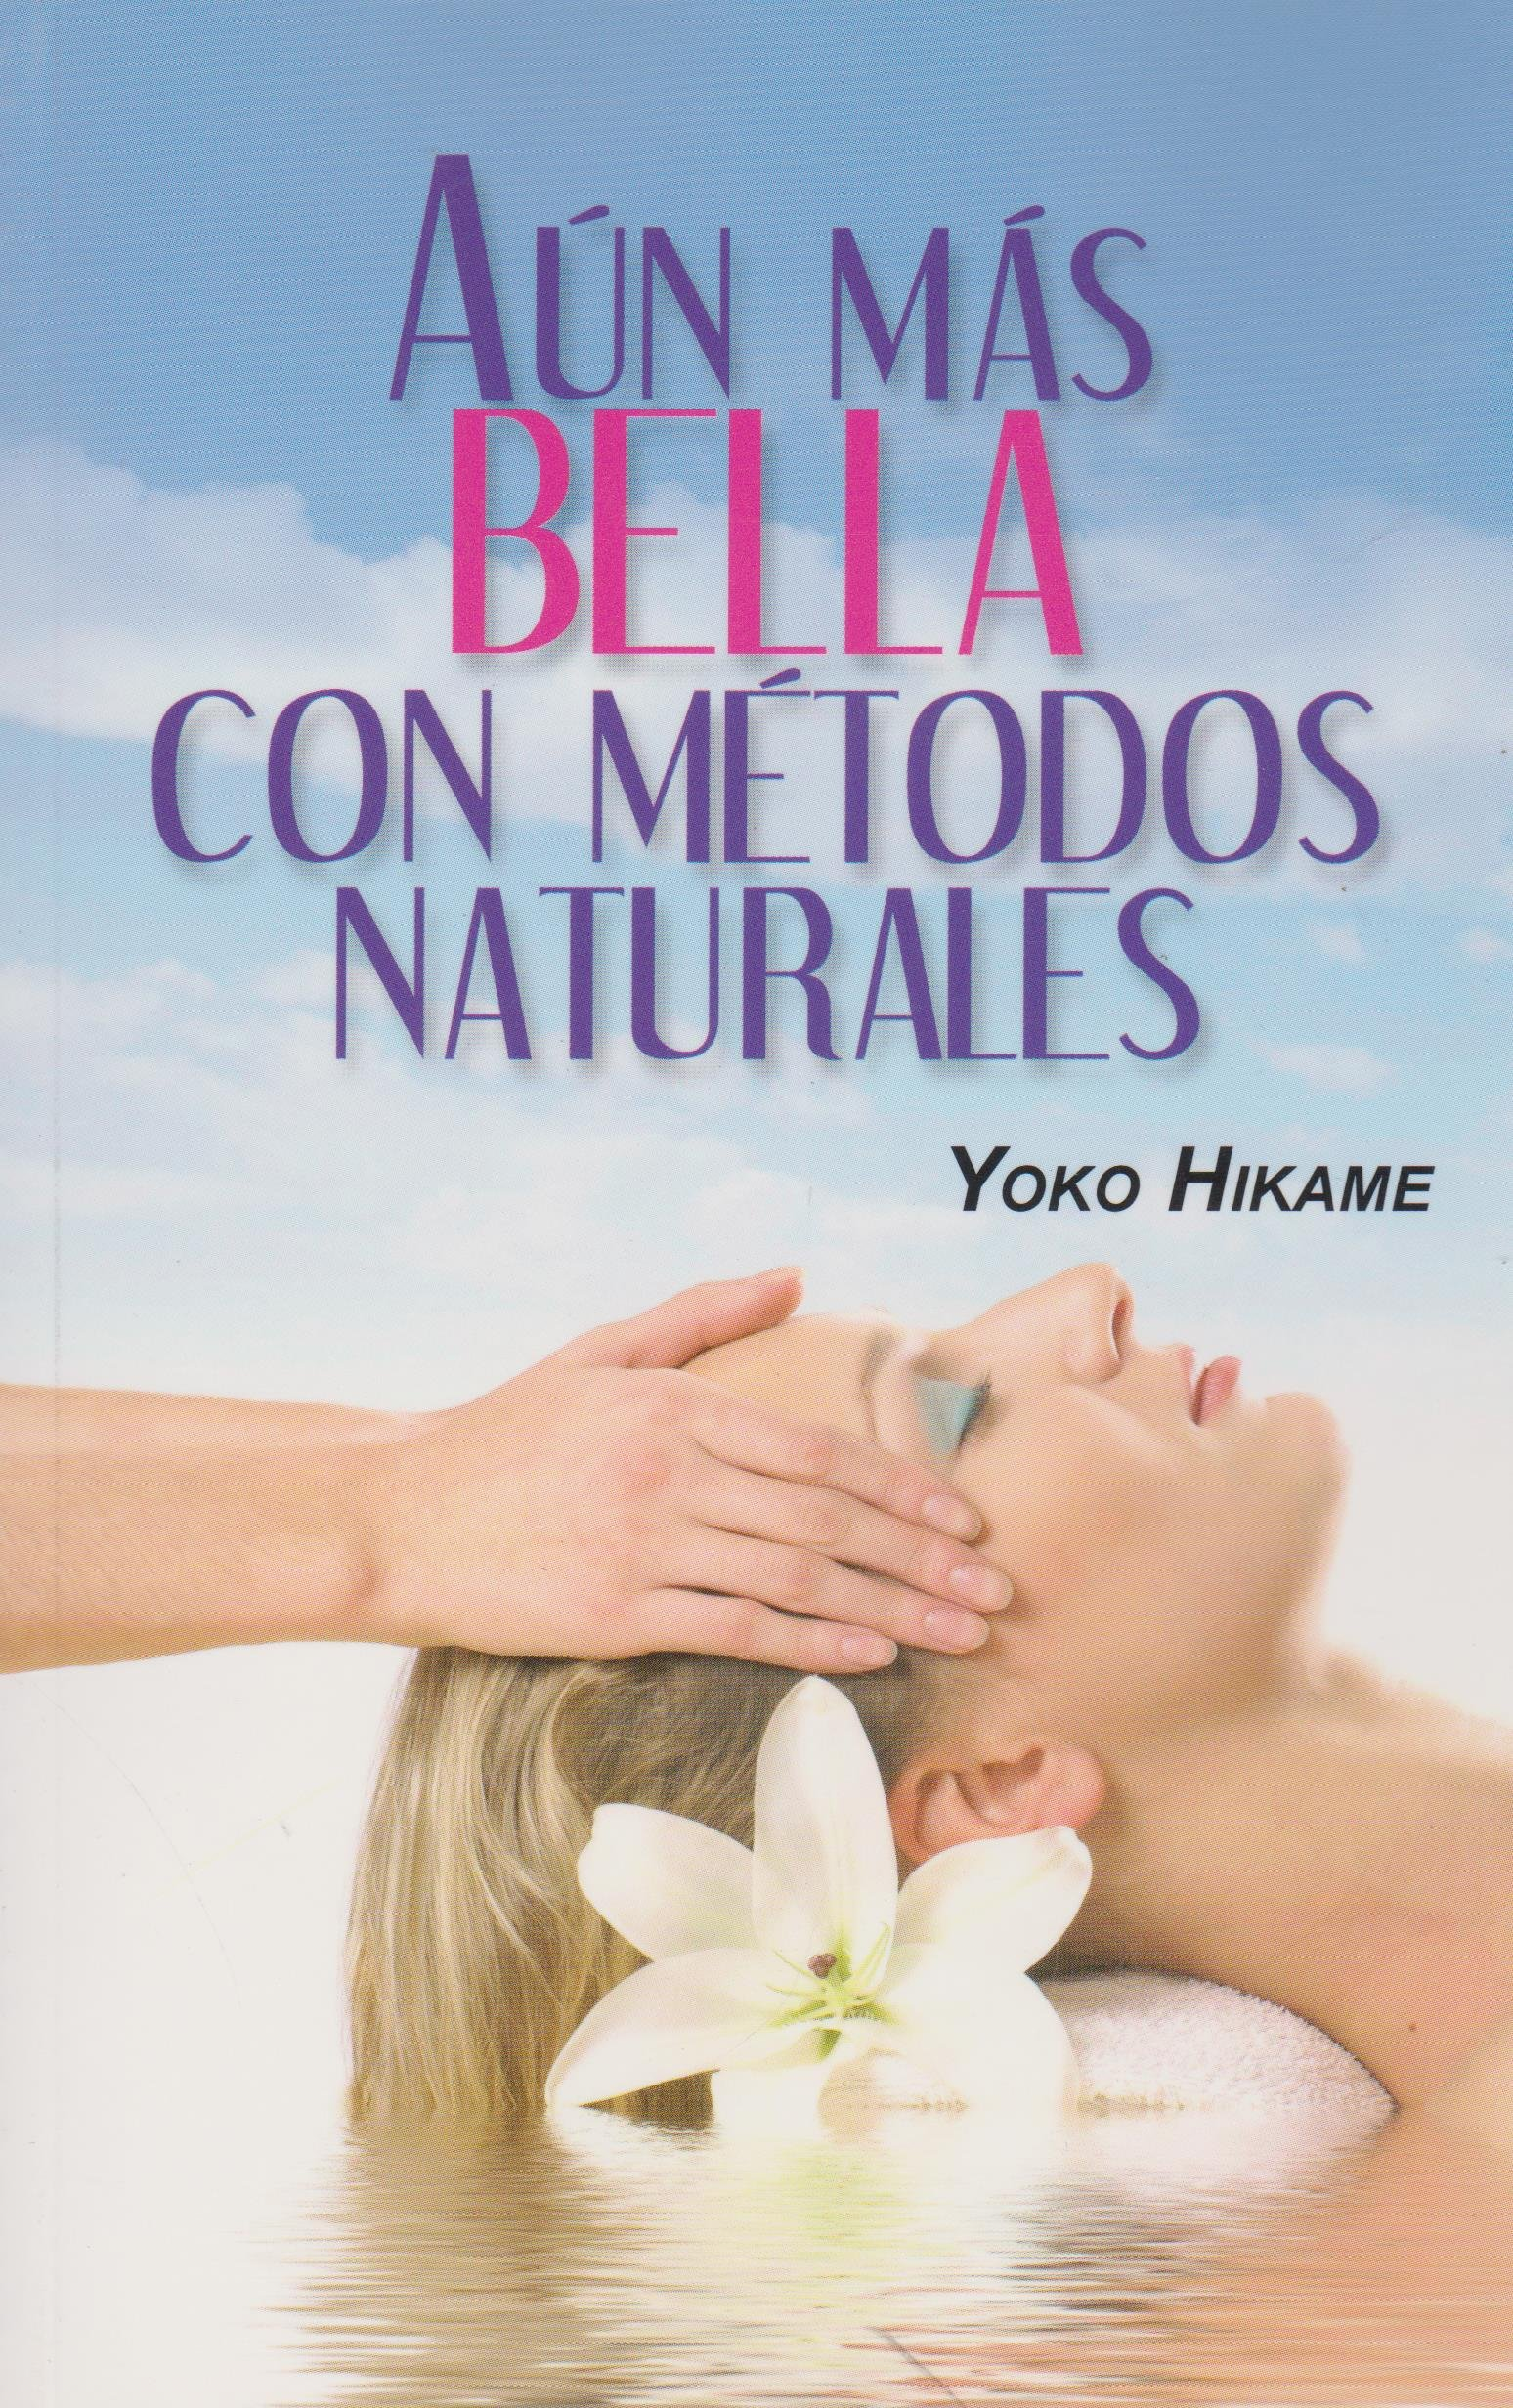 Download Aun mas bella con metodos naturales (Spanish Edition) pdf epub